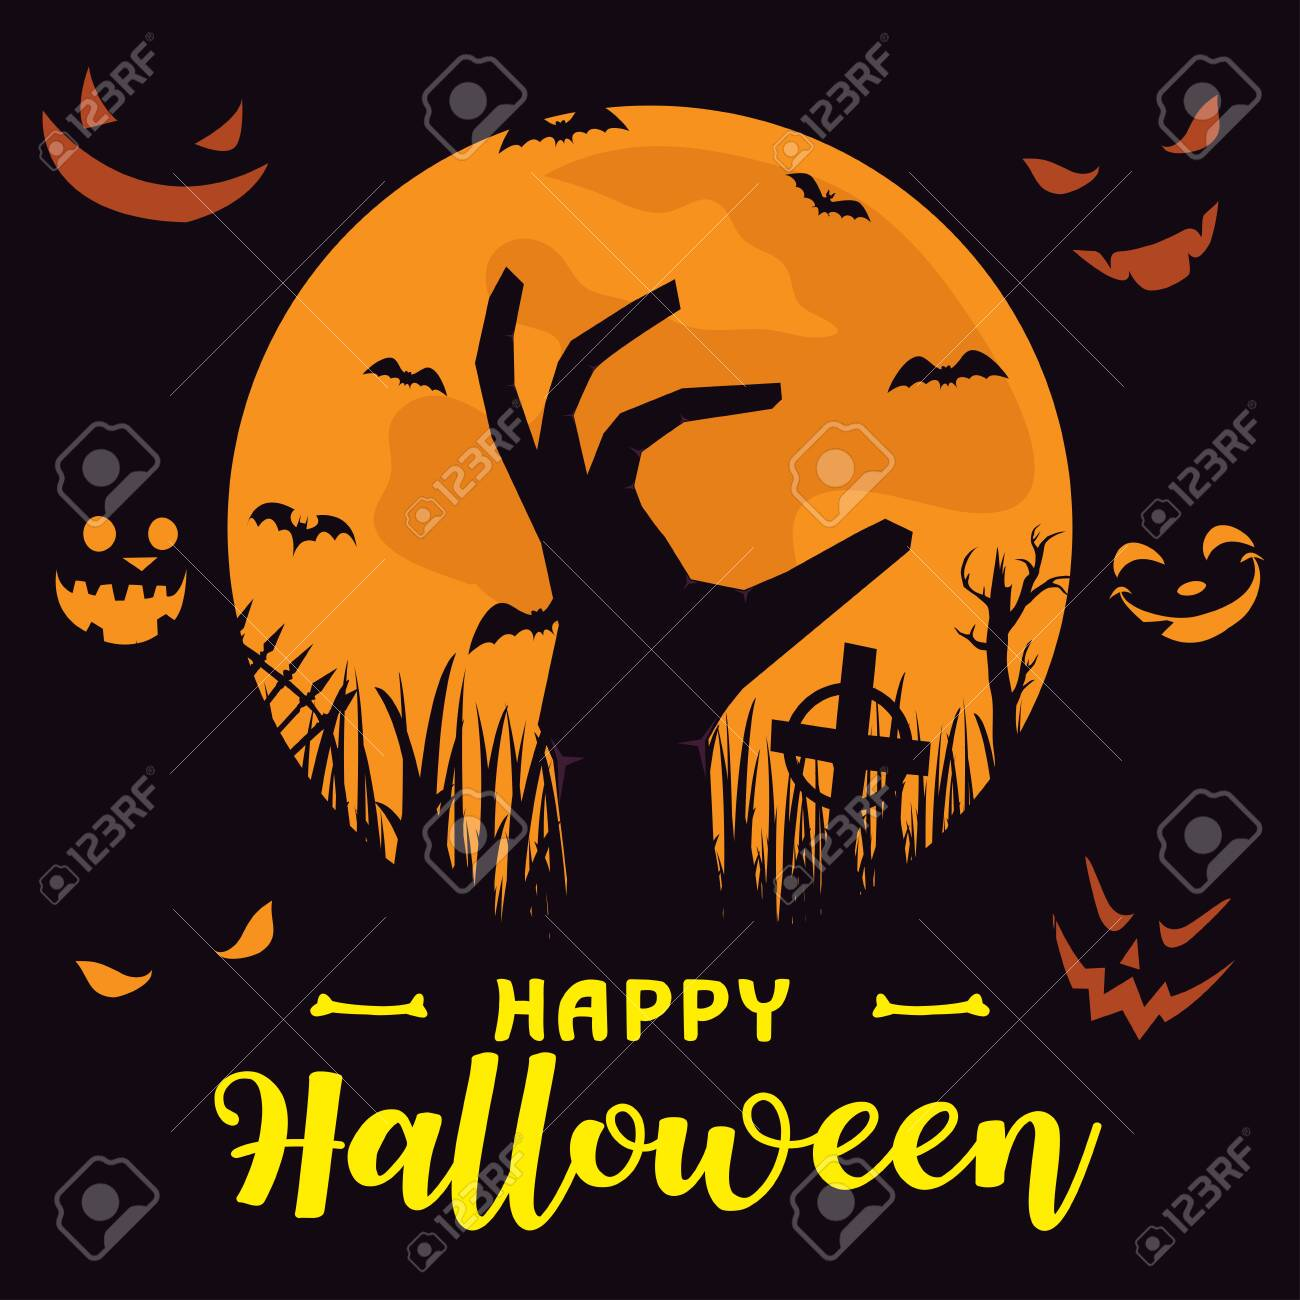 Happy Halloween Background with full moon and zombie hand. Halloween background with zombies and the moon. Happy Halloween Poster. All in a single layer. Vector illustration. - 129708522